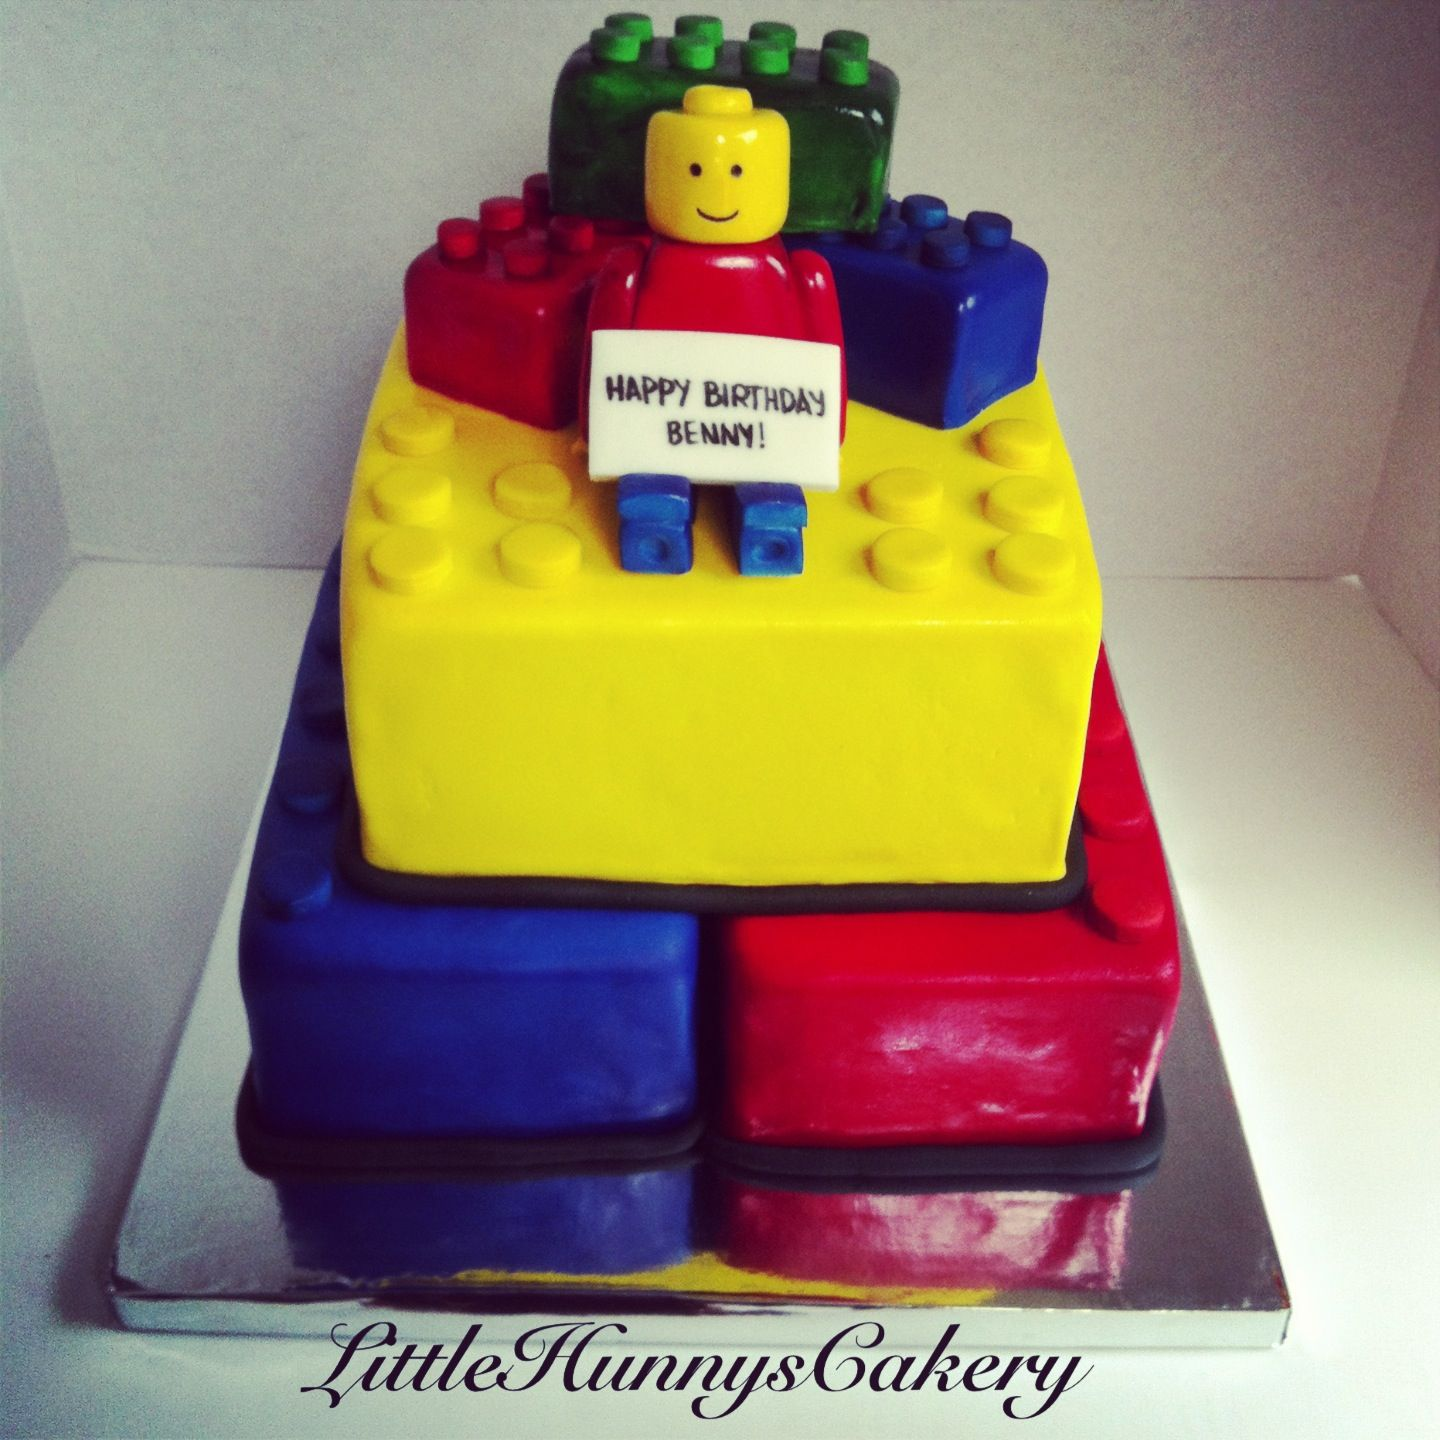 Bright colored lego cake for boys birthday Created by Little Hunnys